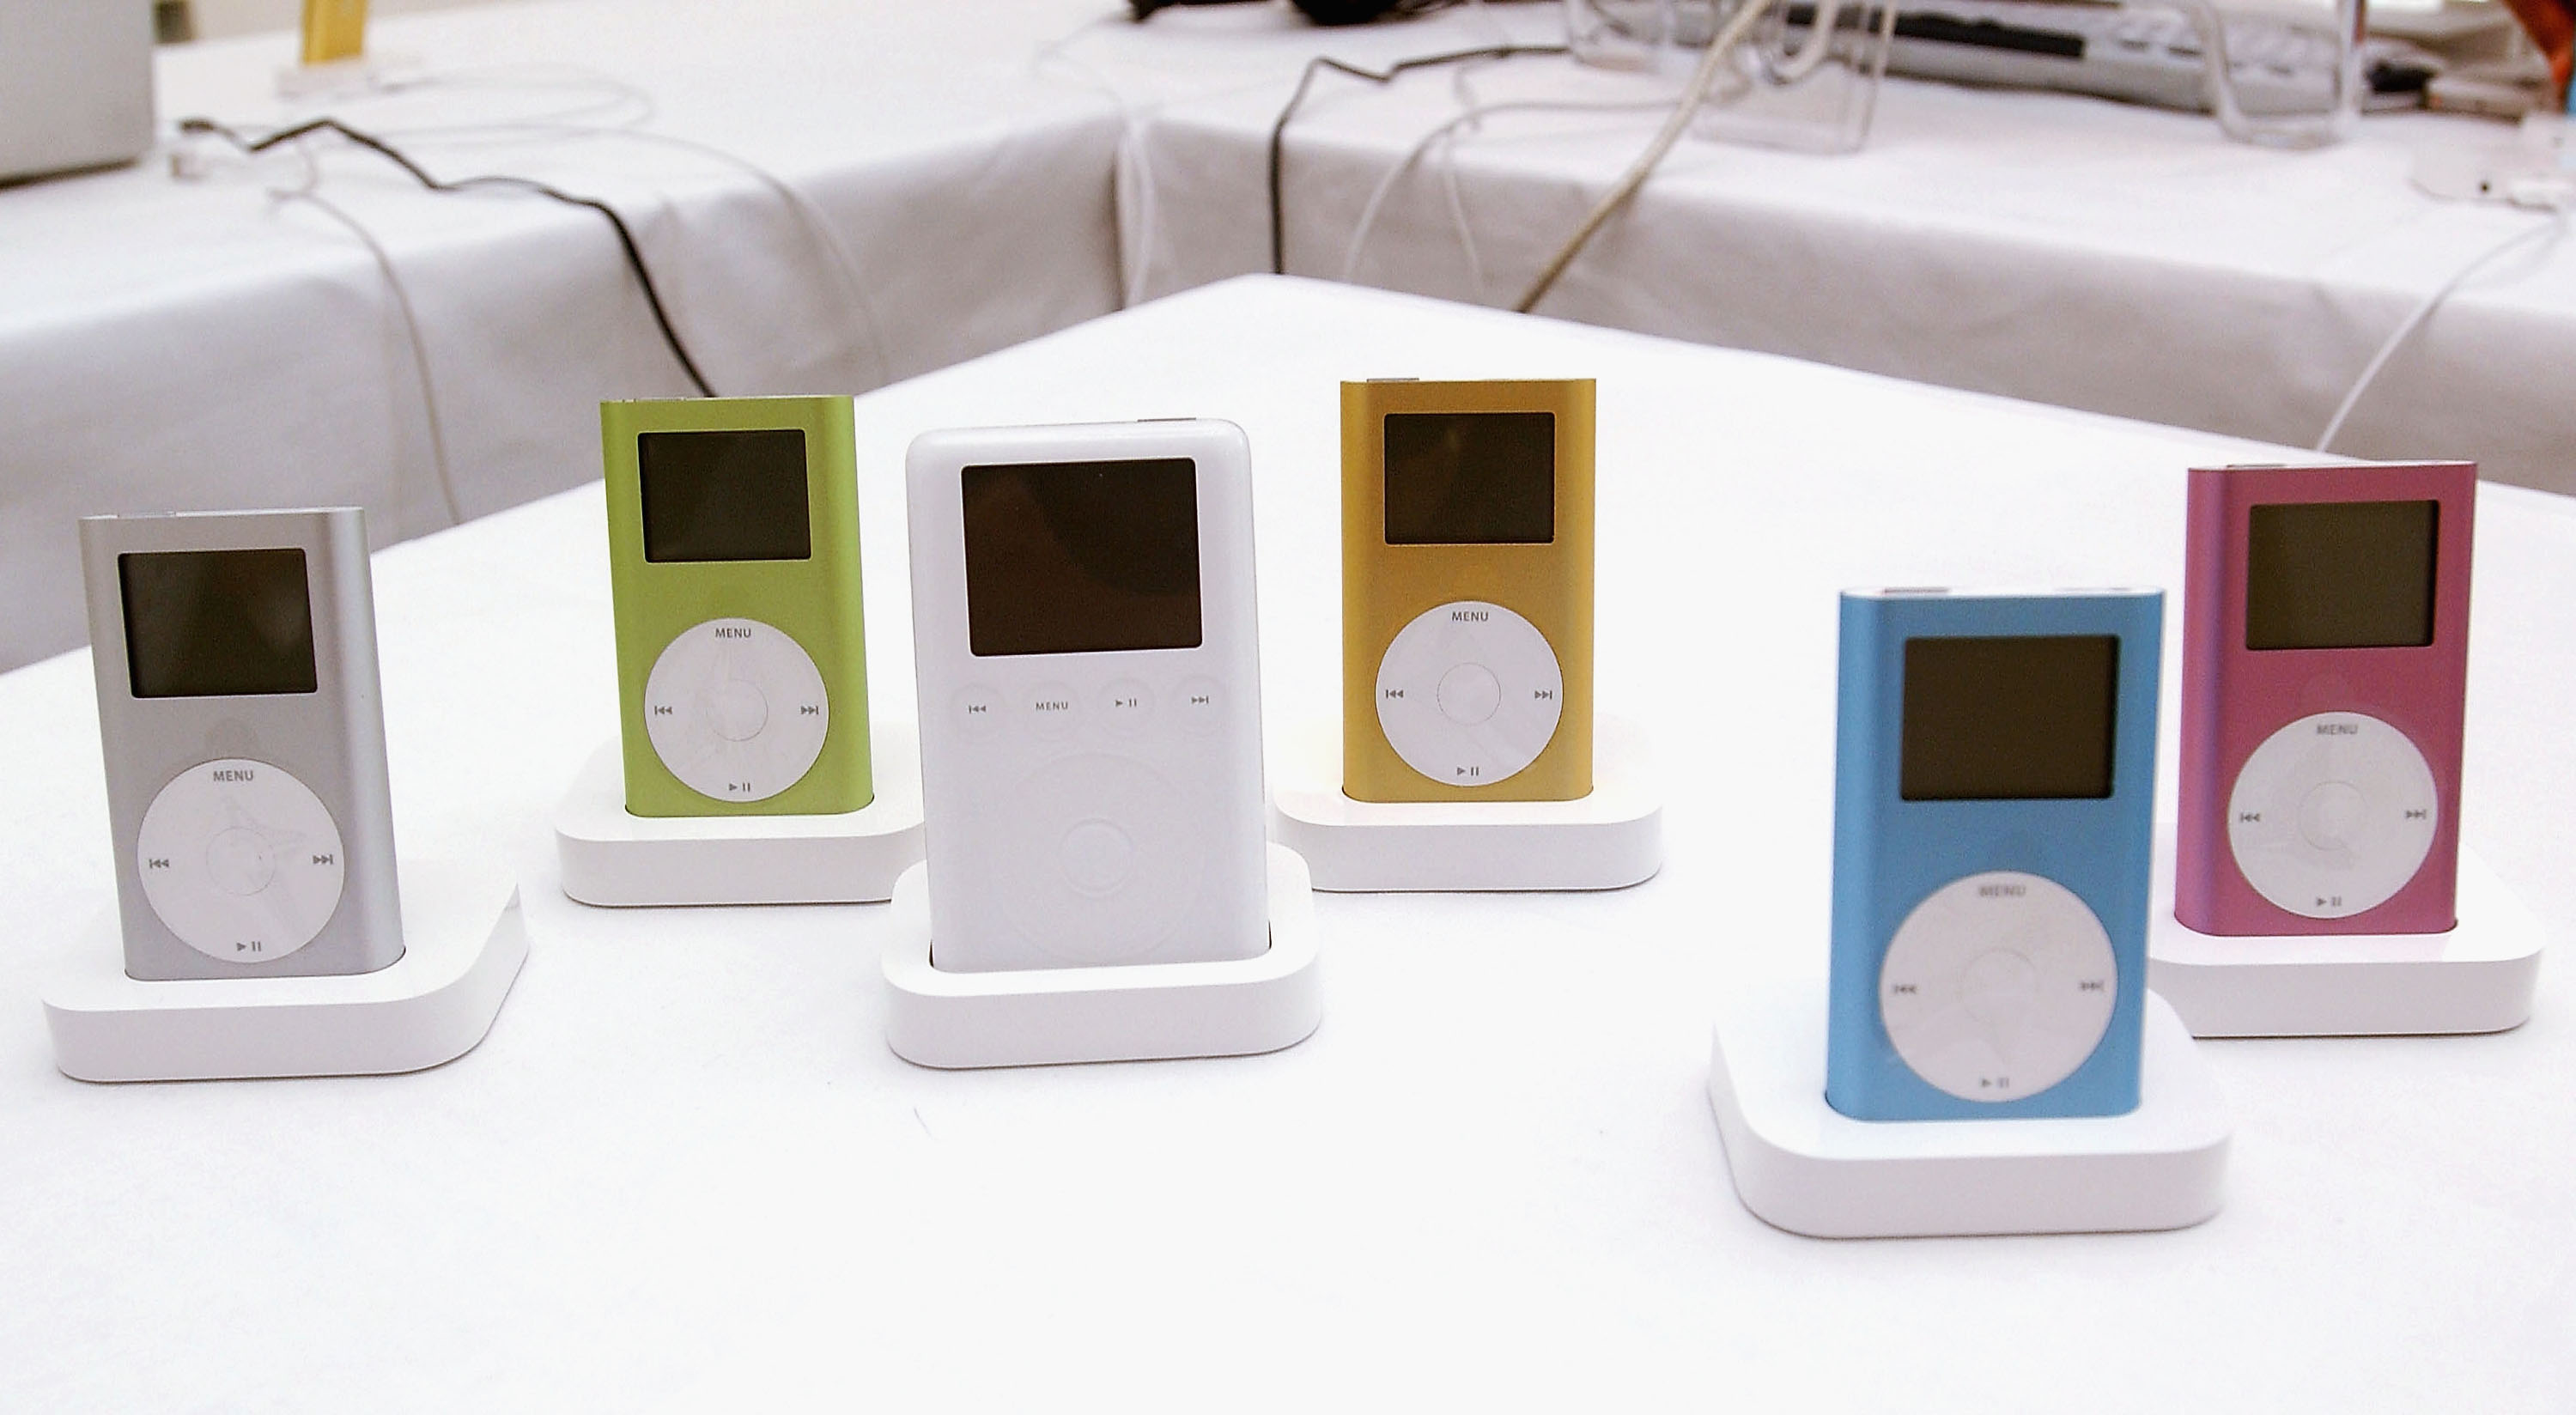 Apple iPods are displayed at the new  Apple iPod Mini press launch on July 16, 2004 in London.